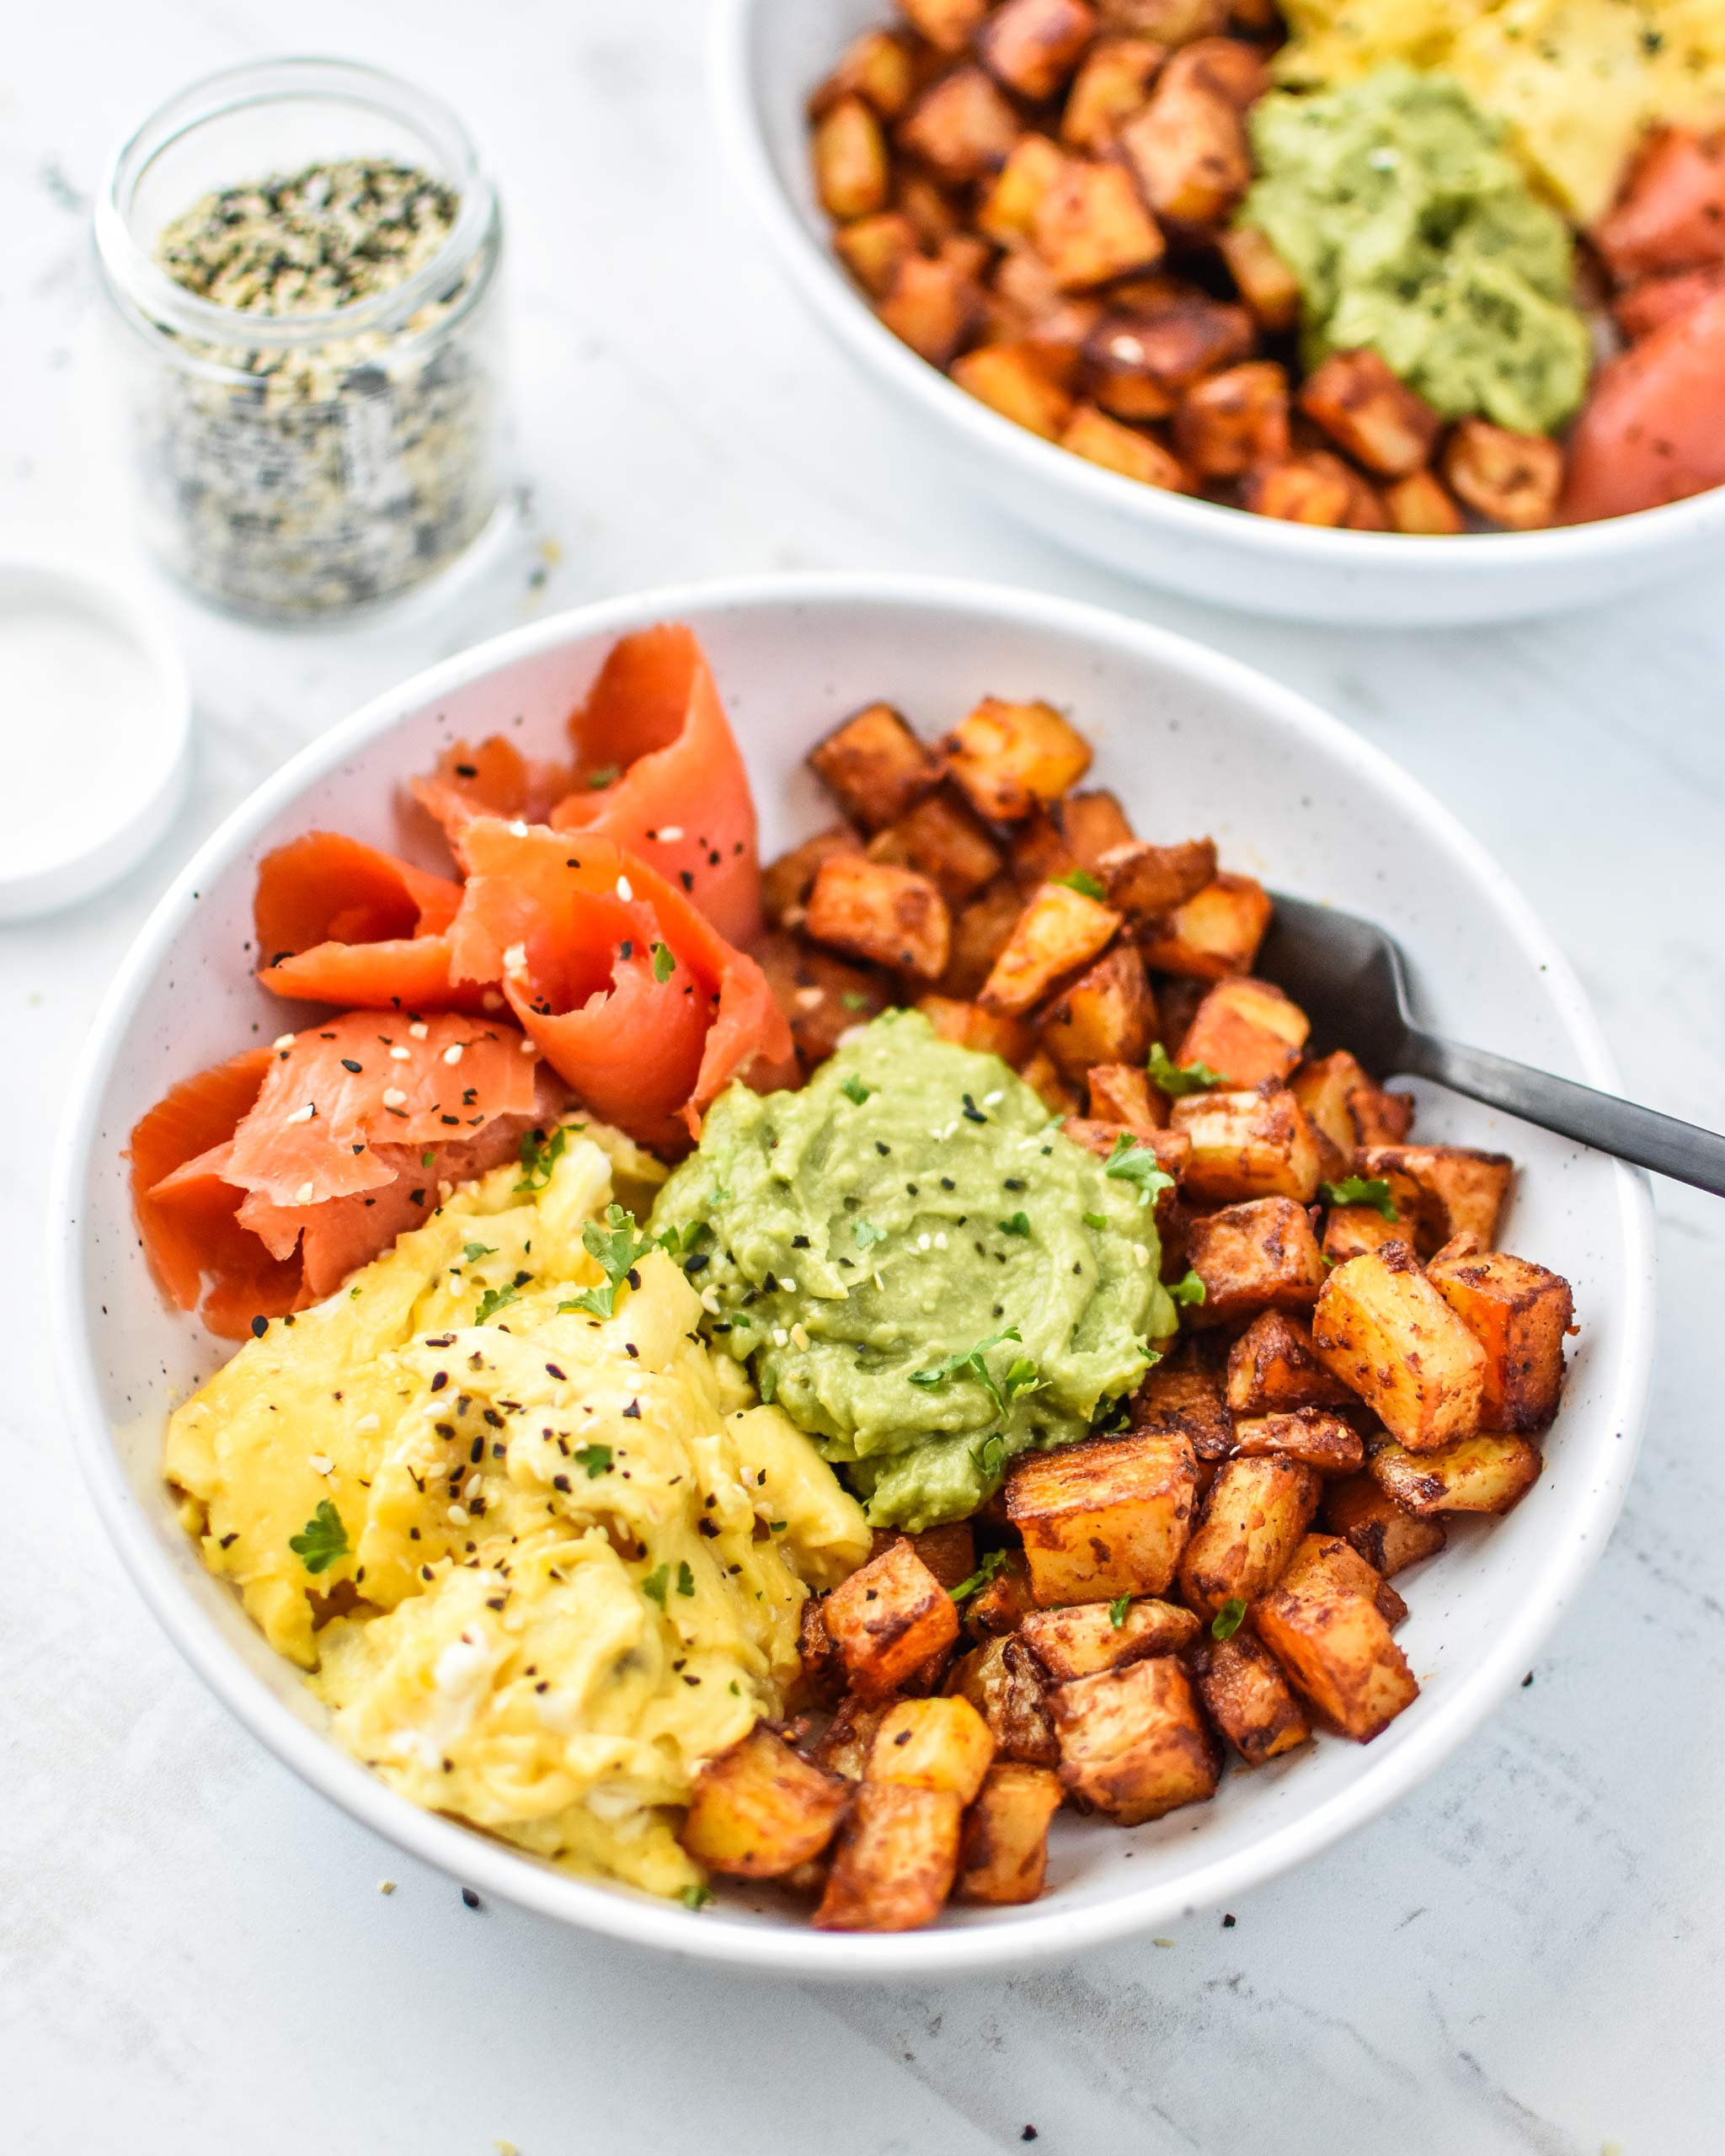 breakfast for dinner is always an option! especially if you don't get to breakfast like this at breakfast time this is the best whole30 dinner recipe idea